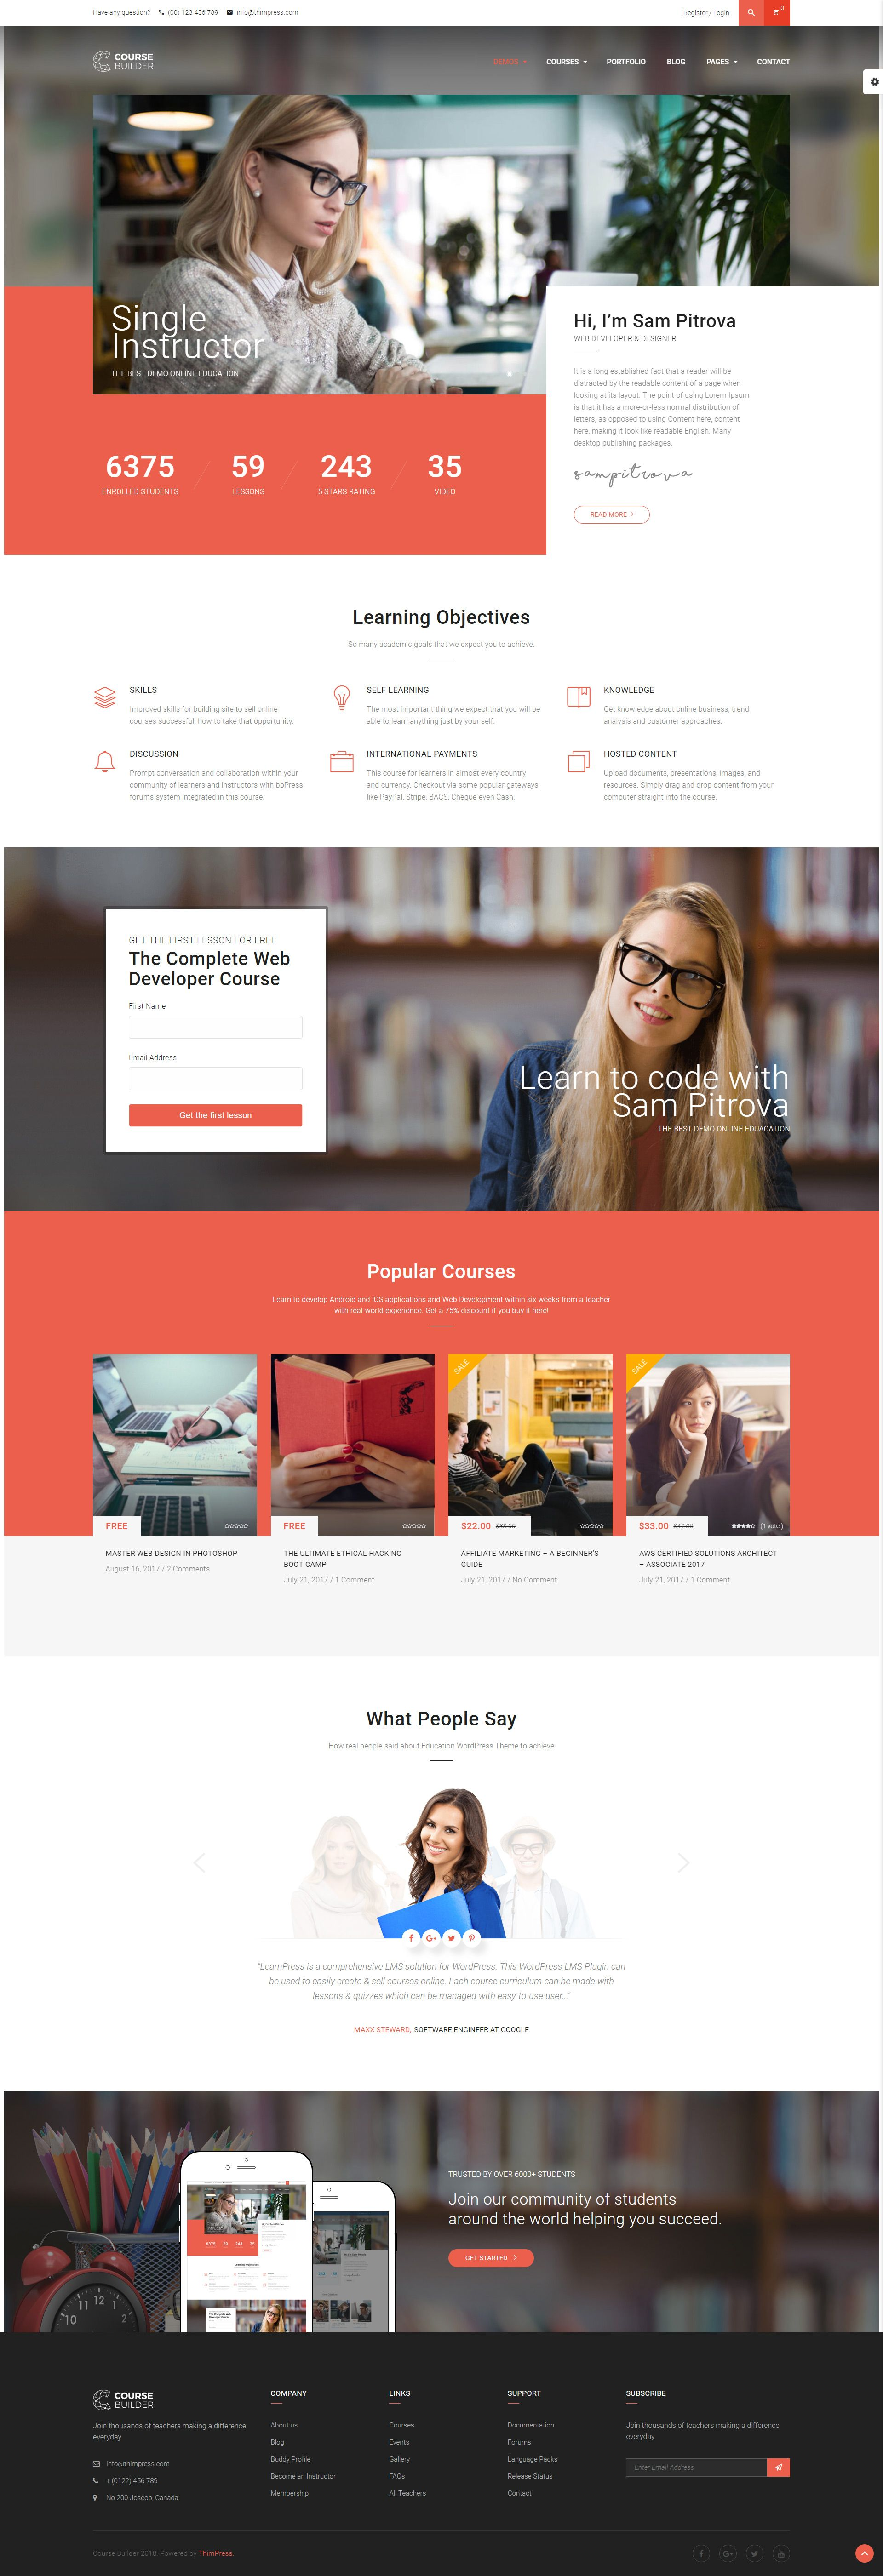 The Wordpress Lms Course Builder Theme Is A Multi Purpose High Quality Elearning Wordpress Lms Learning M Learning Management System Education Online Courses